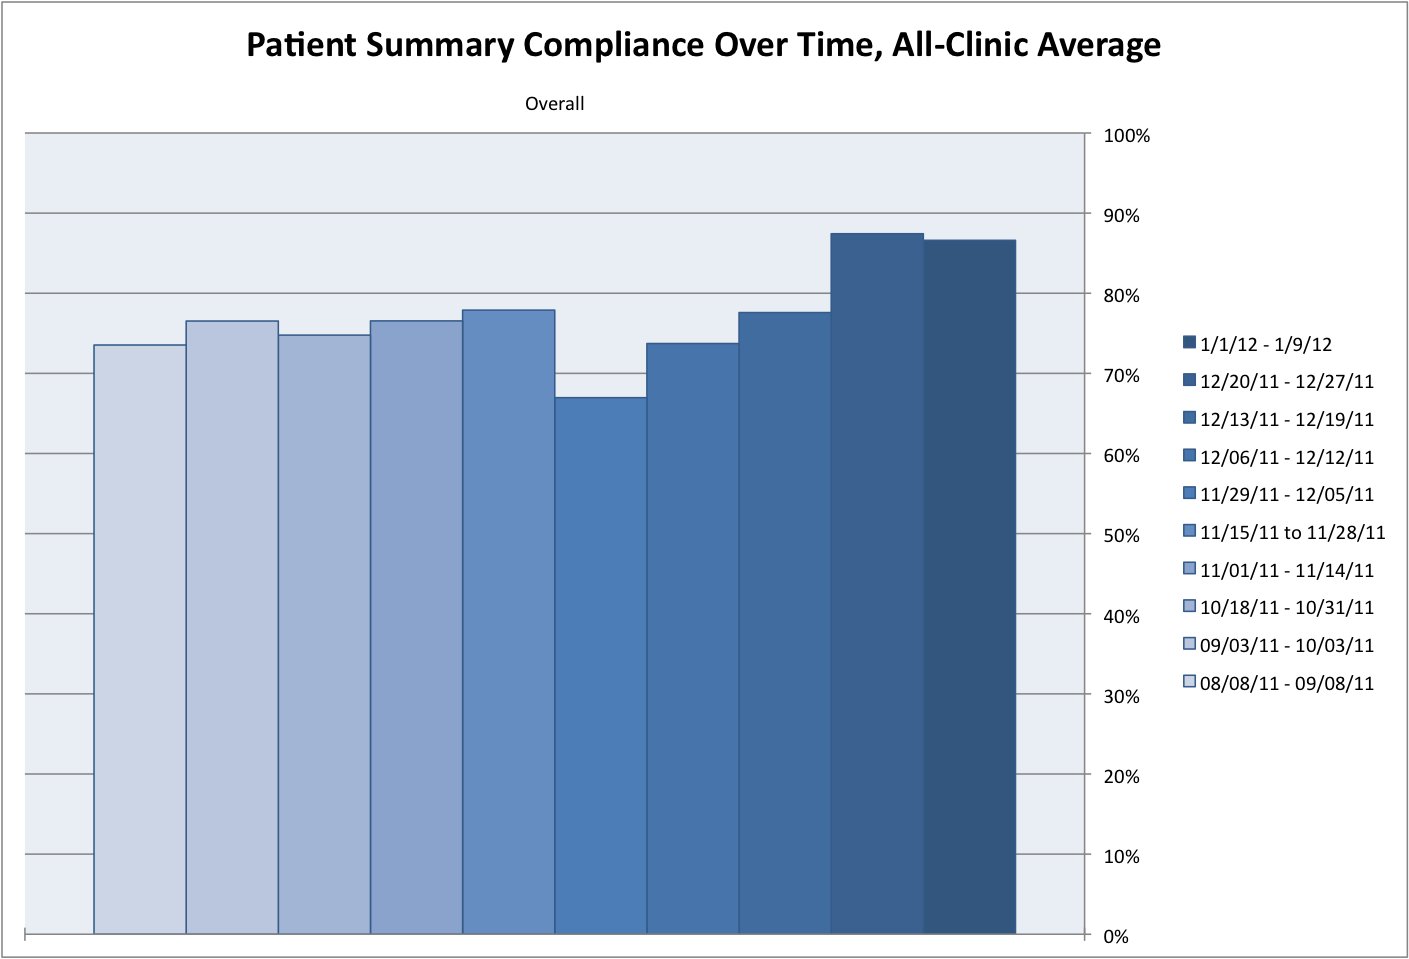 Patient Summary Compliance Over Time, All-Clinic Average